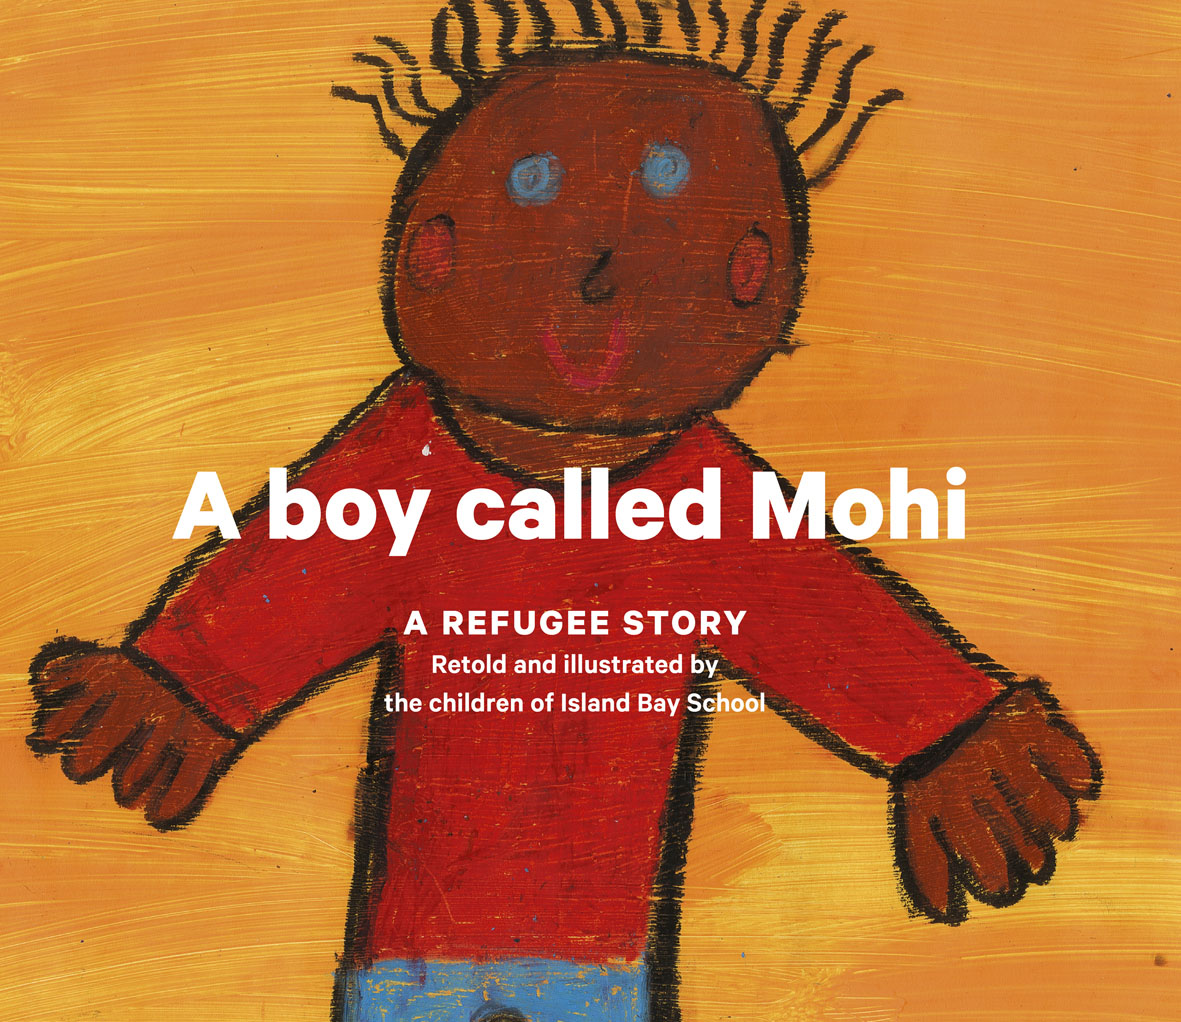 A BOY CALLED MOHI